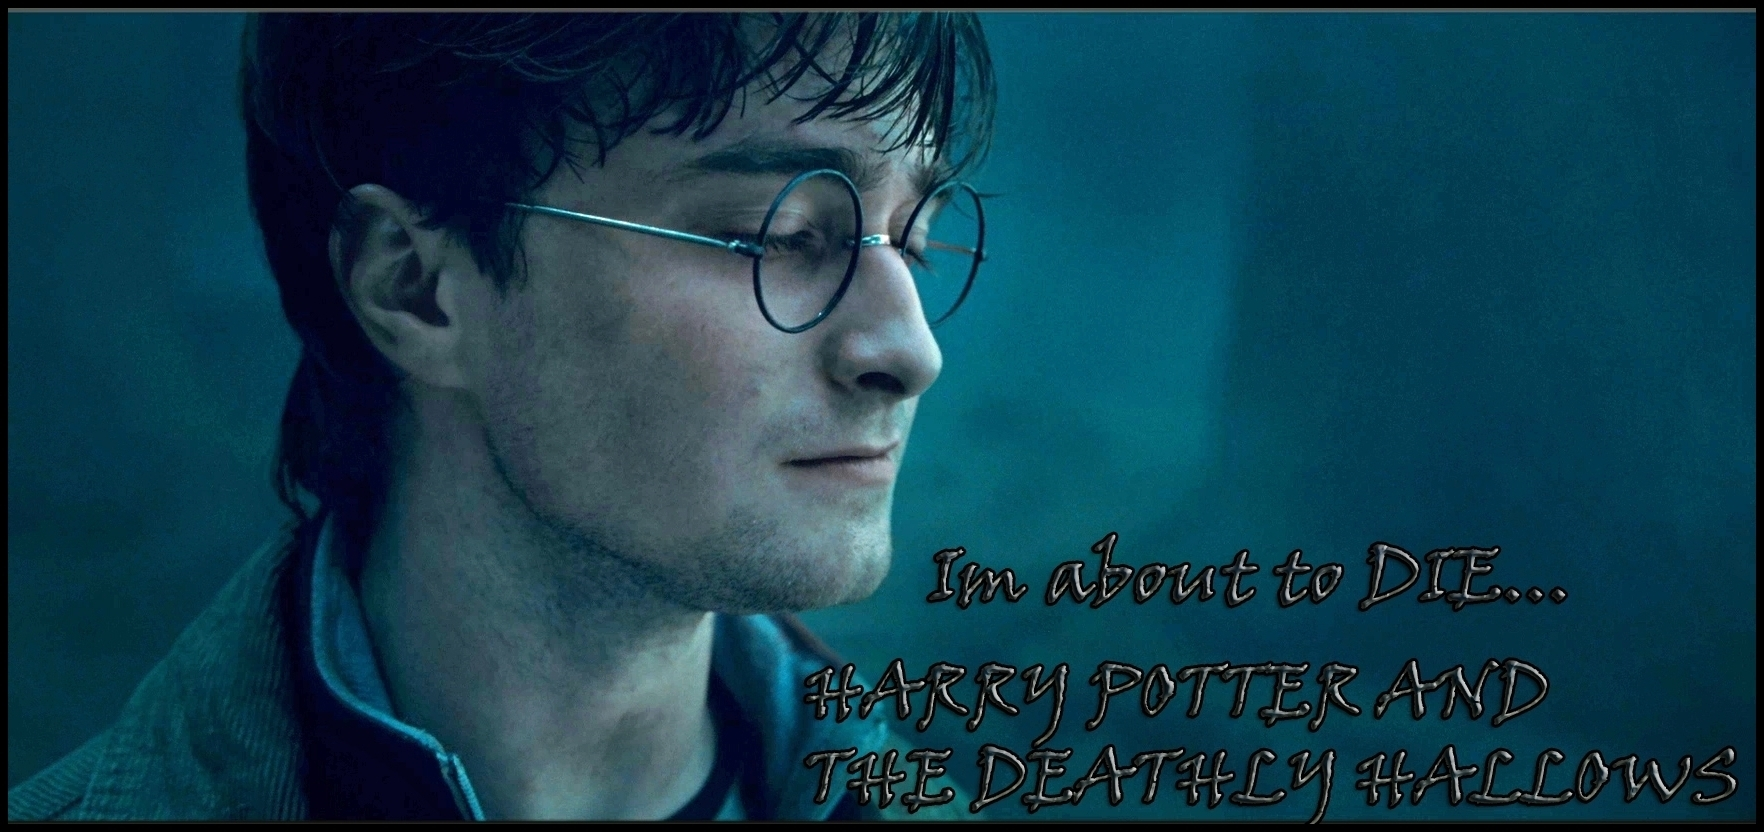 Harry Potter And The Deathly Hallows Quotes. QuotesGram